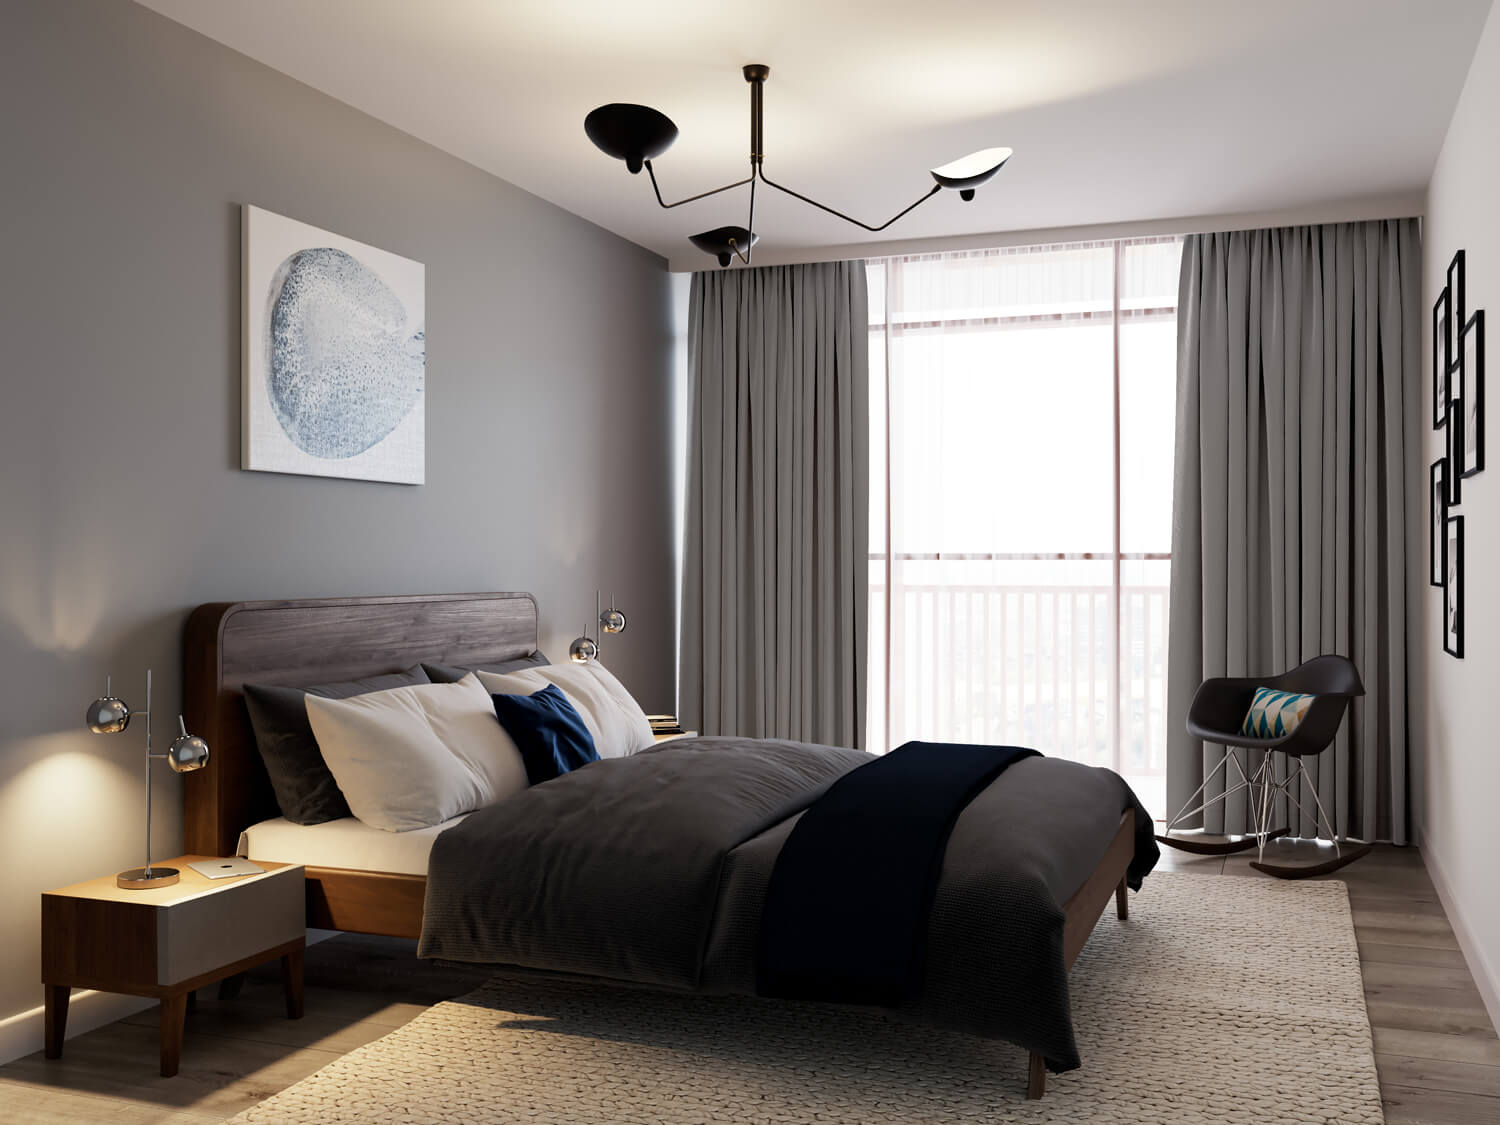 Urban CGI of Derwent Street high rise development, featuring a cosy bedroom in neutral colours, with large comfortable bed and a feature window wall behind soft grey curtains.